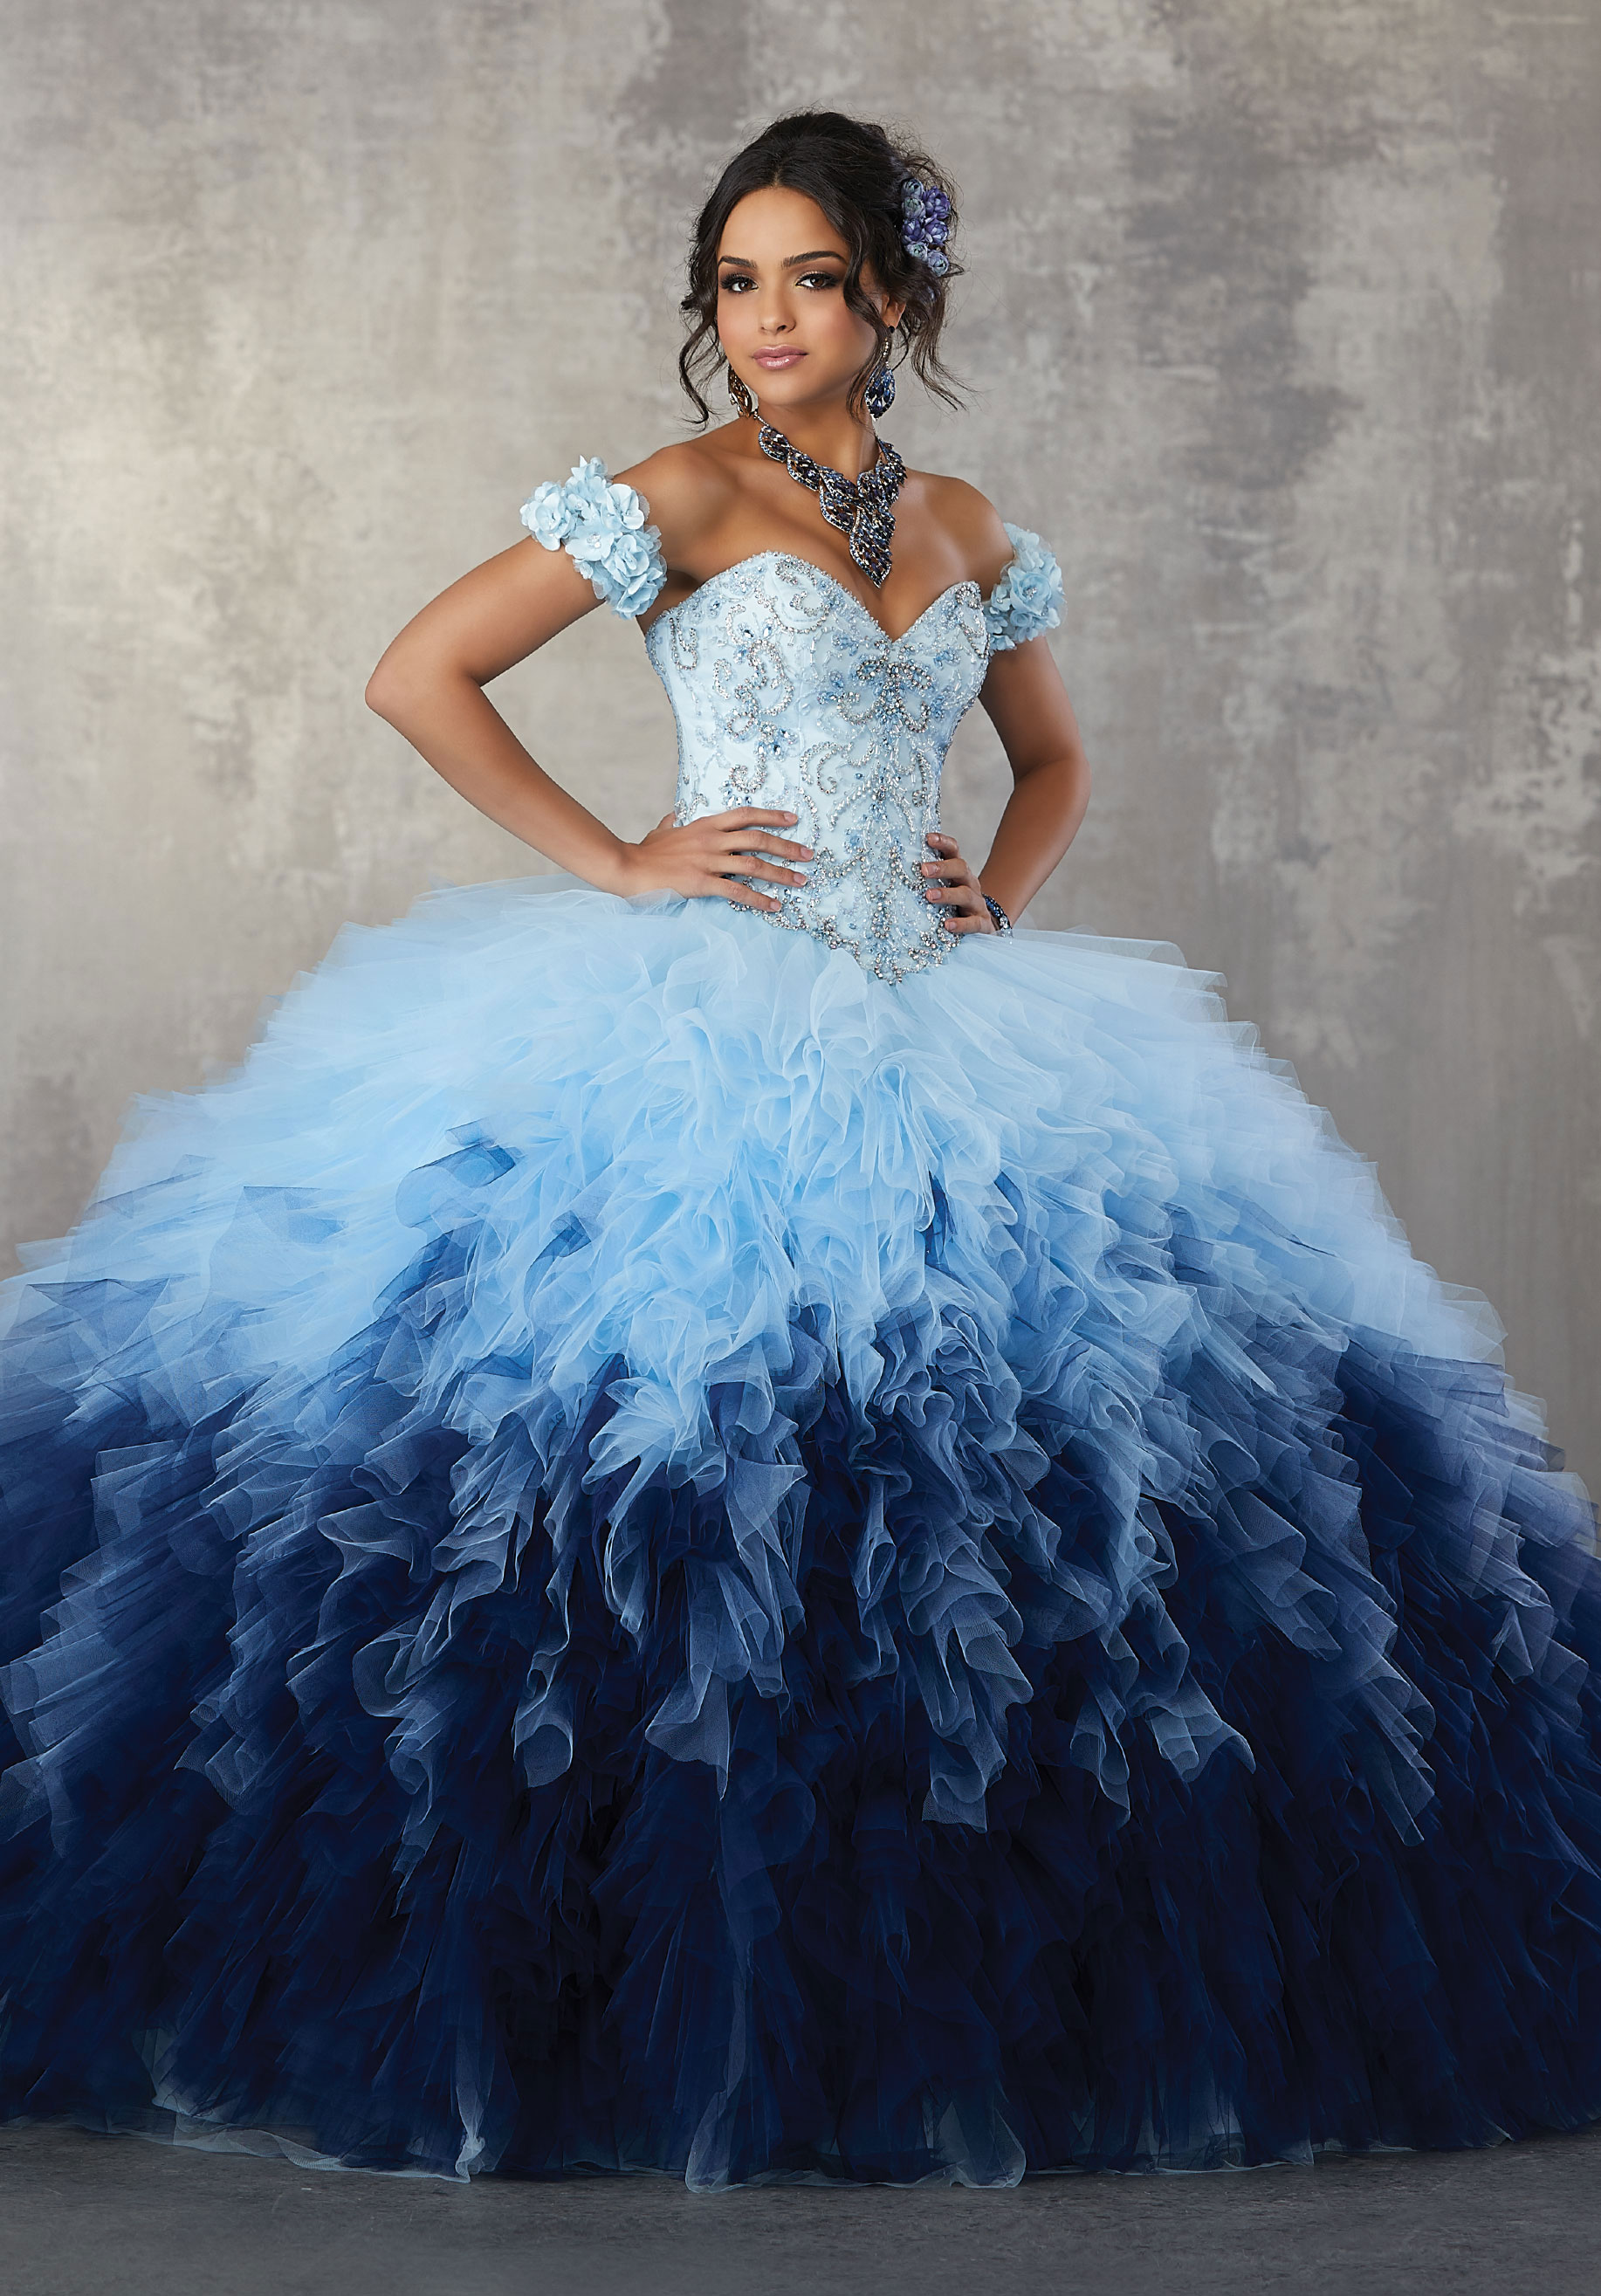 Quinceanera Dress Shops Boston | Dresses by Russo Chelsea MA